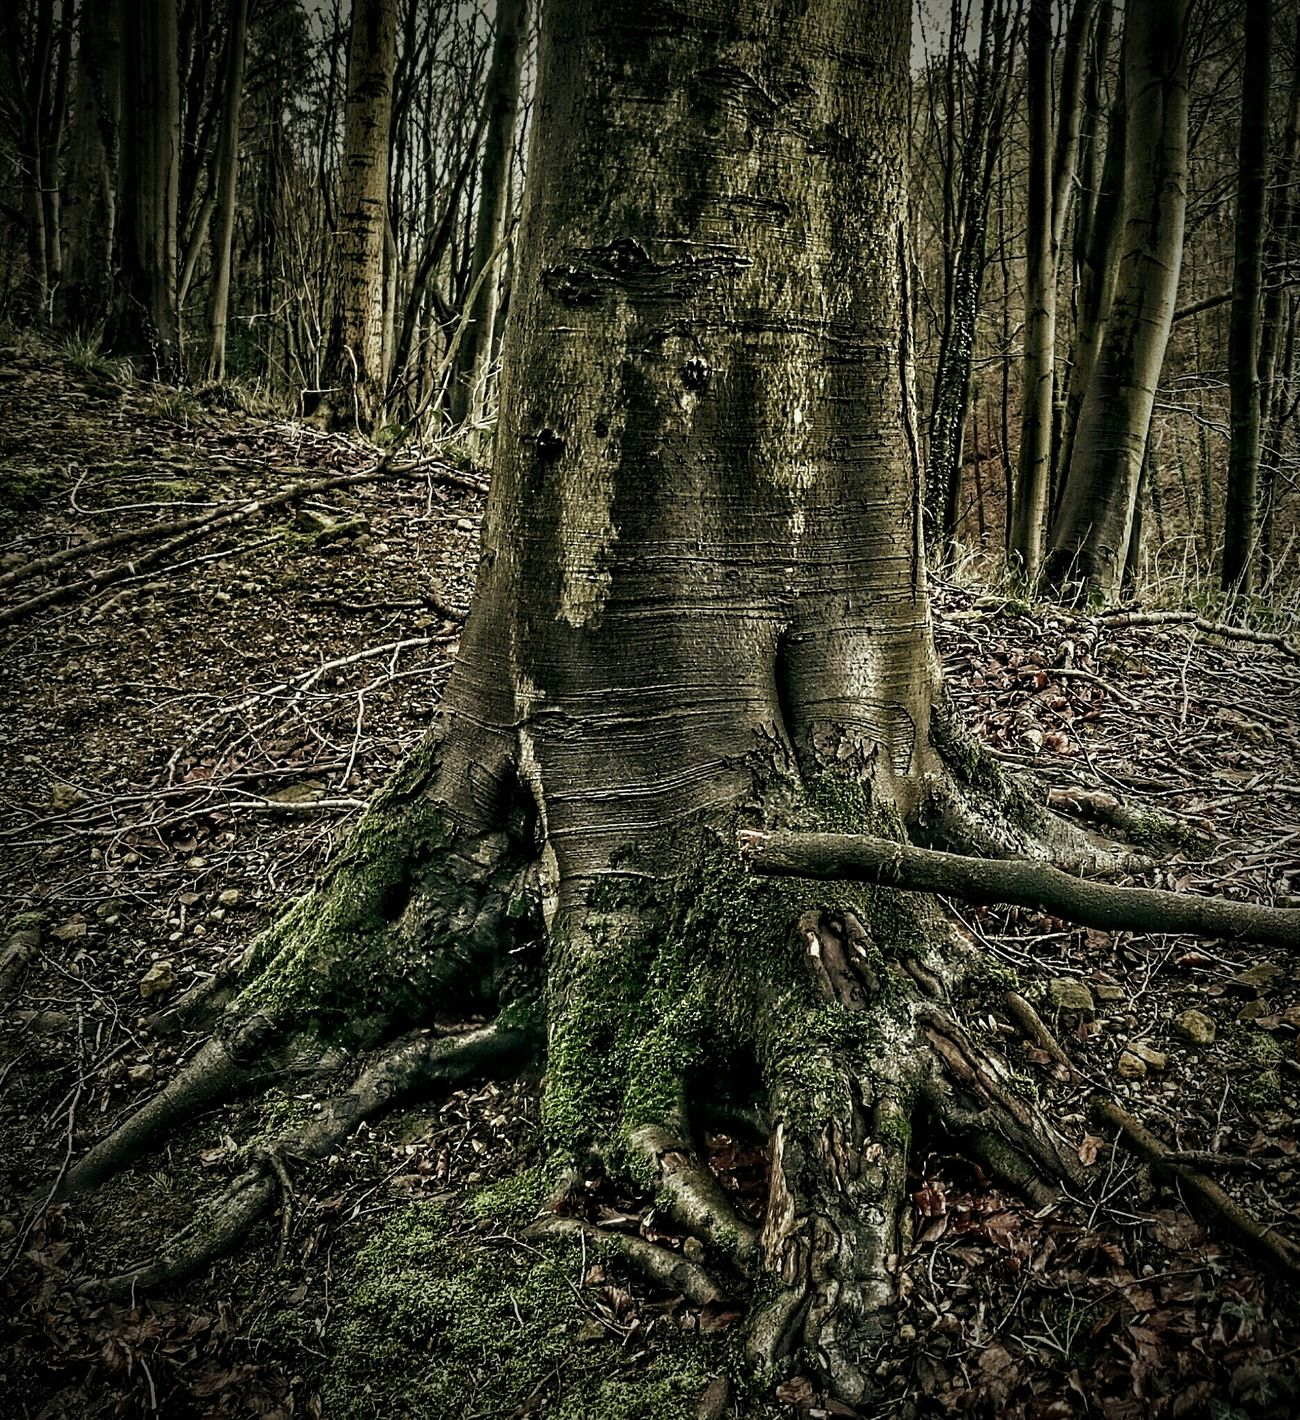 Treetrunk Mosscovered Mossy Tree Taking Photos HDR Hdr_Collection WoodLand Patterns In Nature Nature Beauty In Nature Eeyemgallery Eerie Scene Eerie Tree